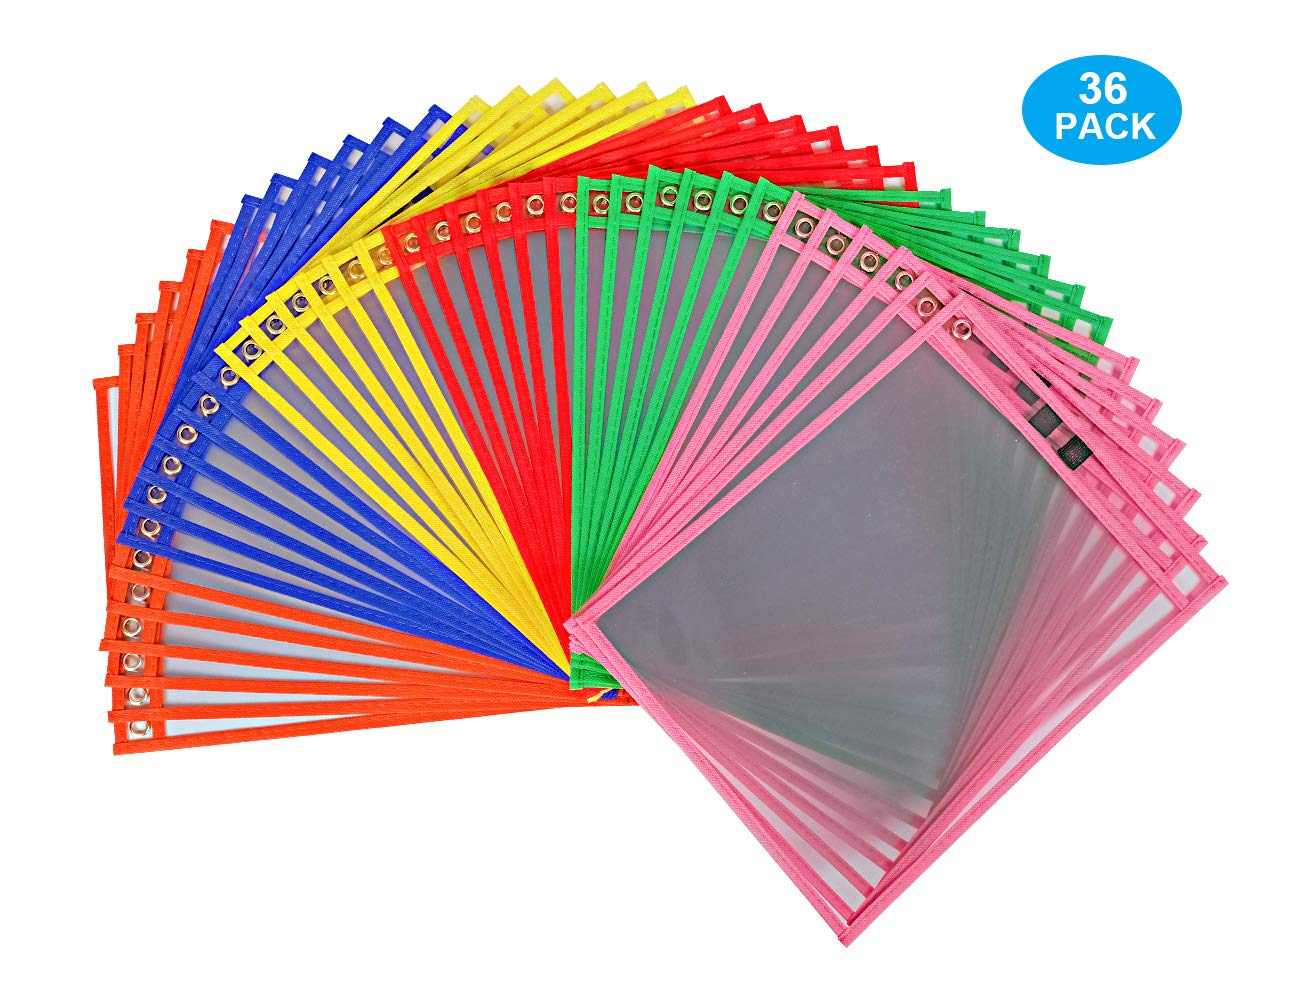 EasyPAG Reusable Dry Erase Pockets - 36 Pack 10 x 13 inch 6 Assorted Colors Clear Plastic Sleeves Protect Bag with Holefor for Classroom Organization,Teacher and School Supplies by EasyPAG